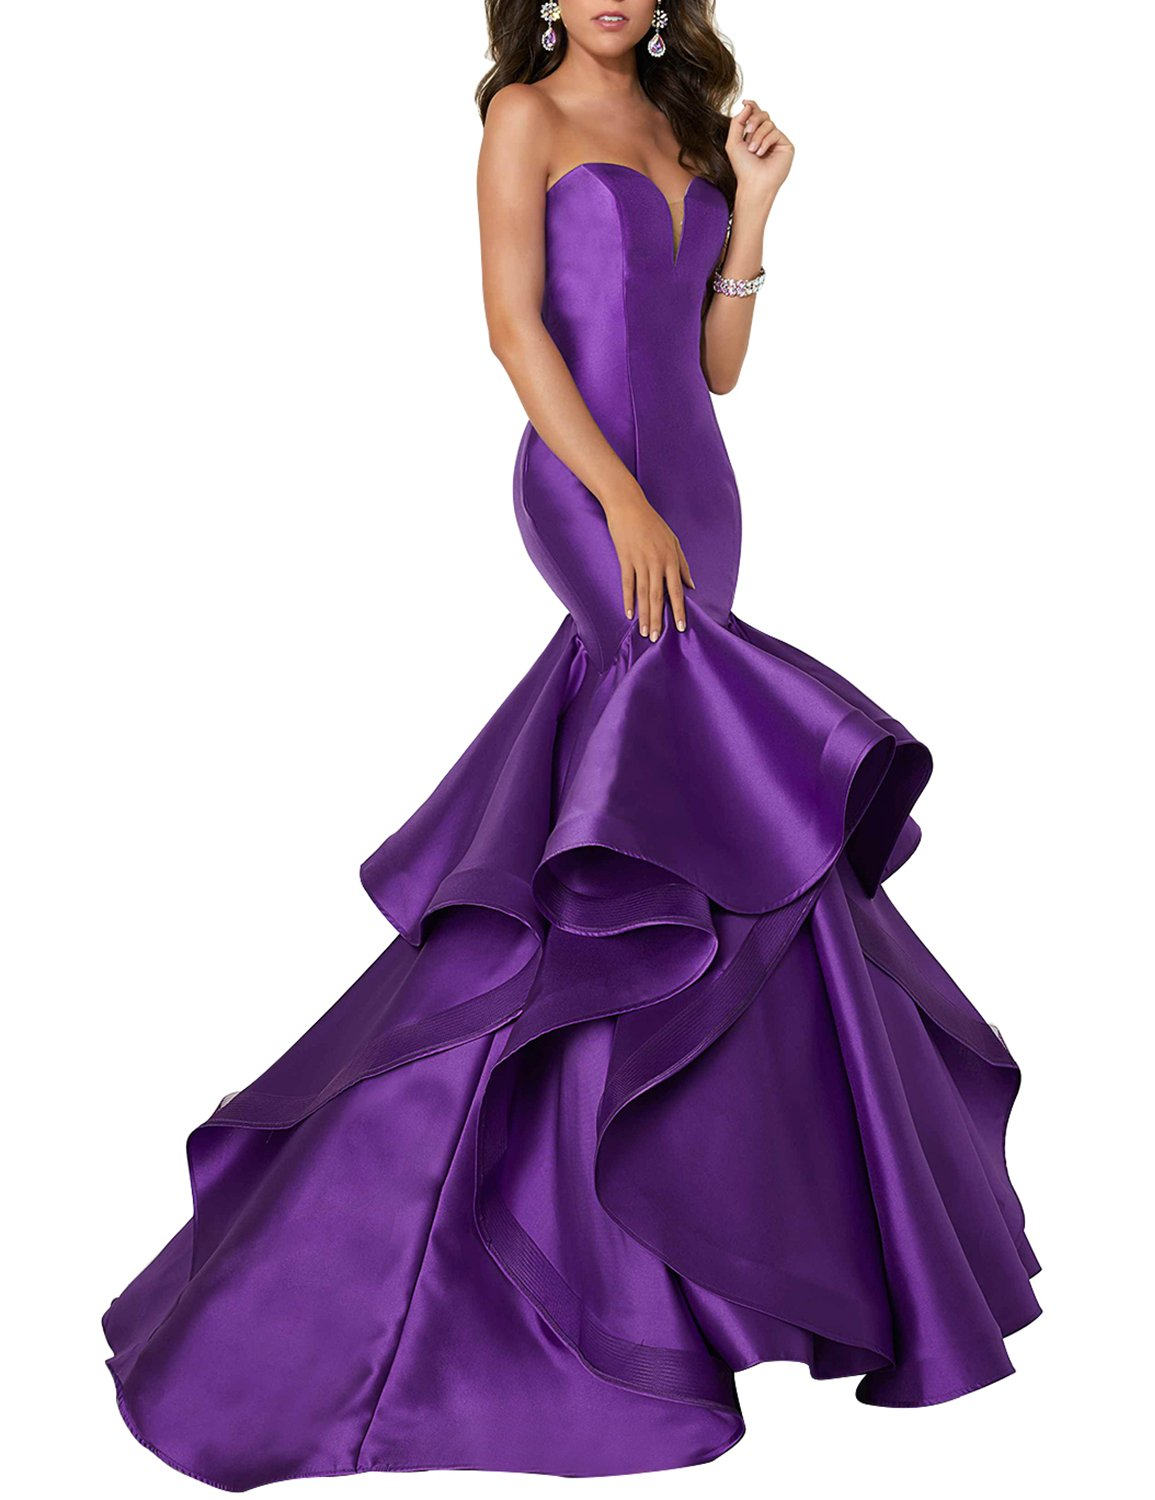 Dannifore Womens Satin Prom Gowns Short Homecoming Party Evening Dresses